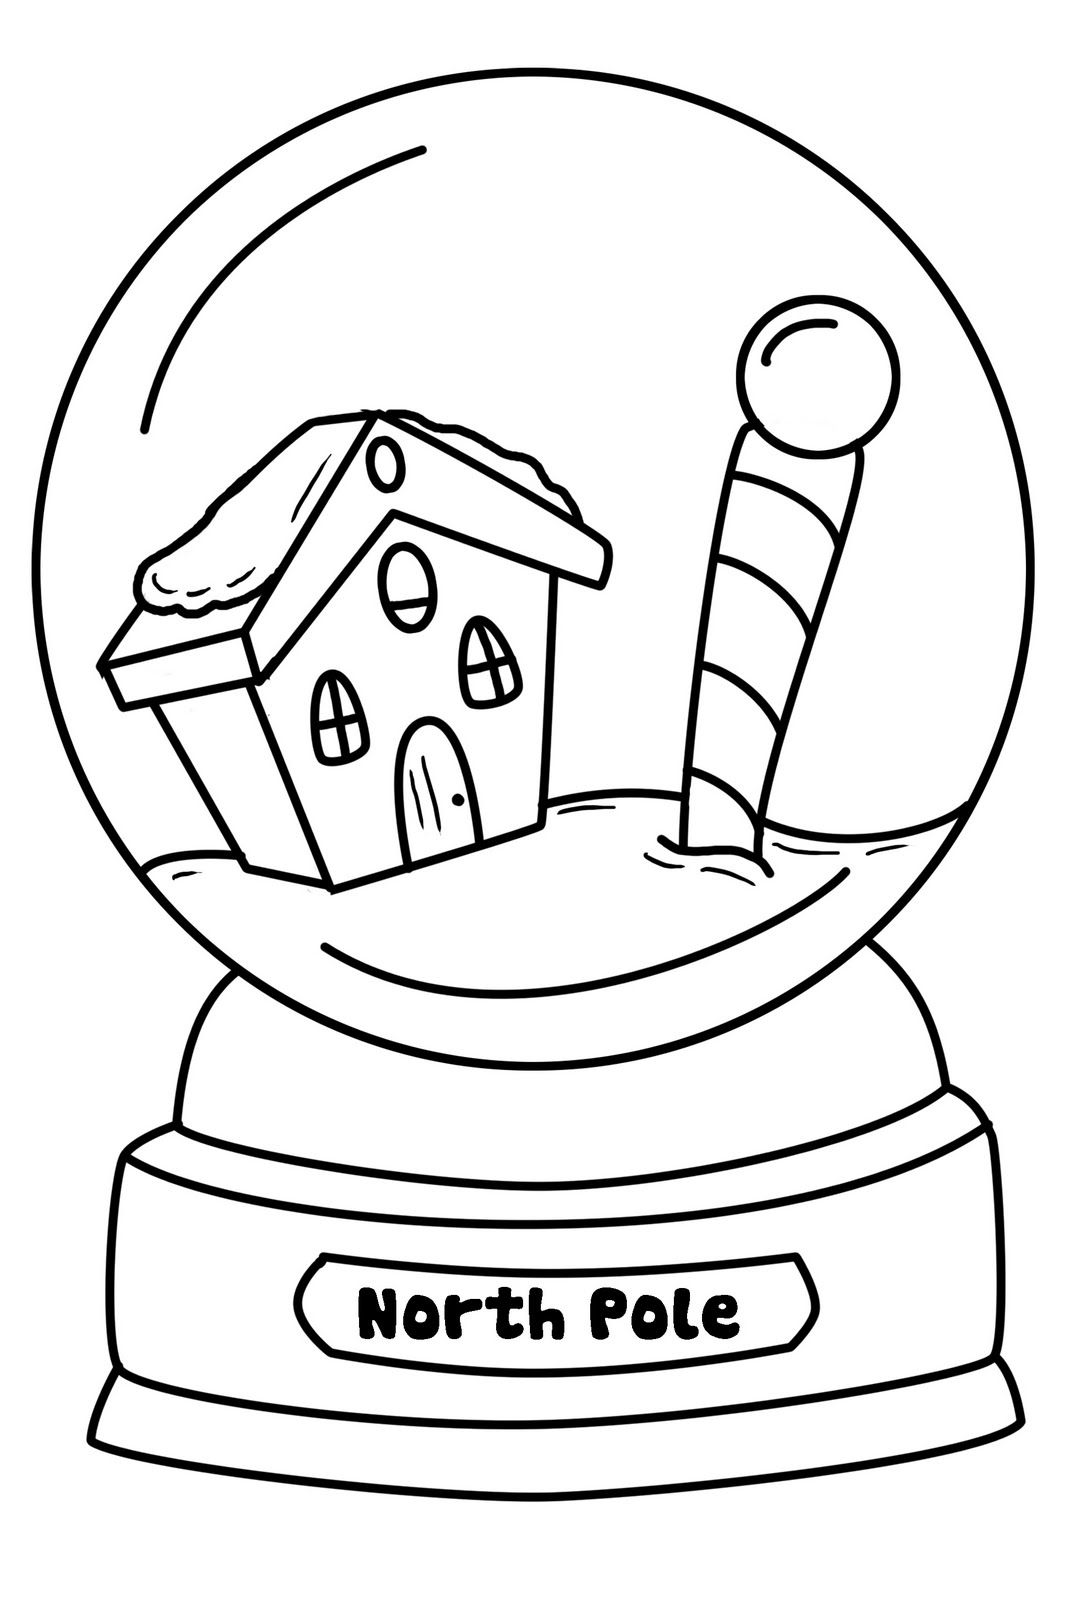 Snowglobe Coloring Pages Best Coloring Pages For Kids in